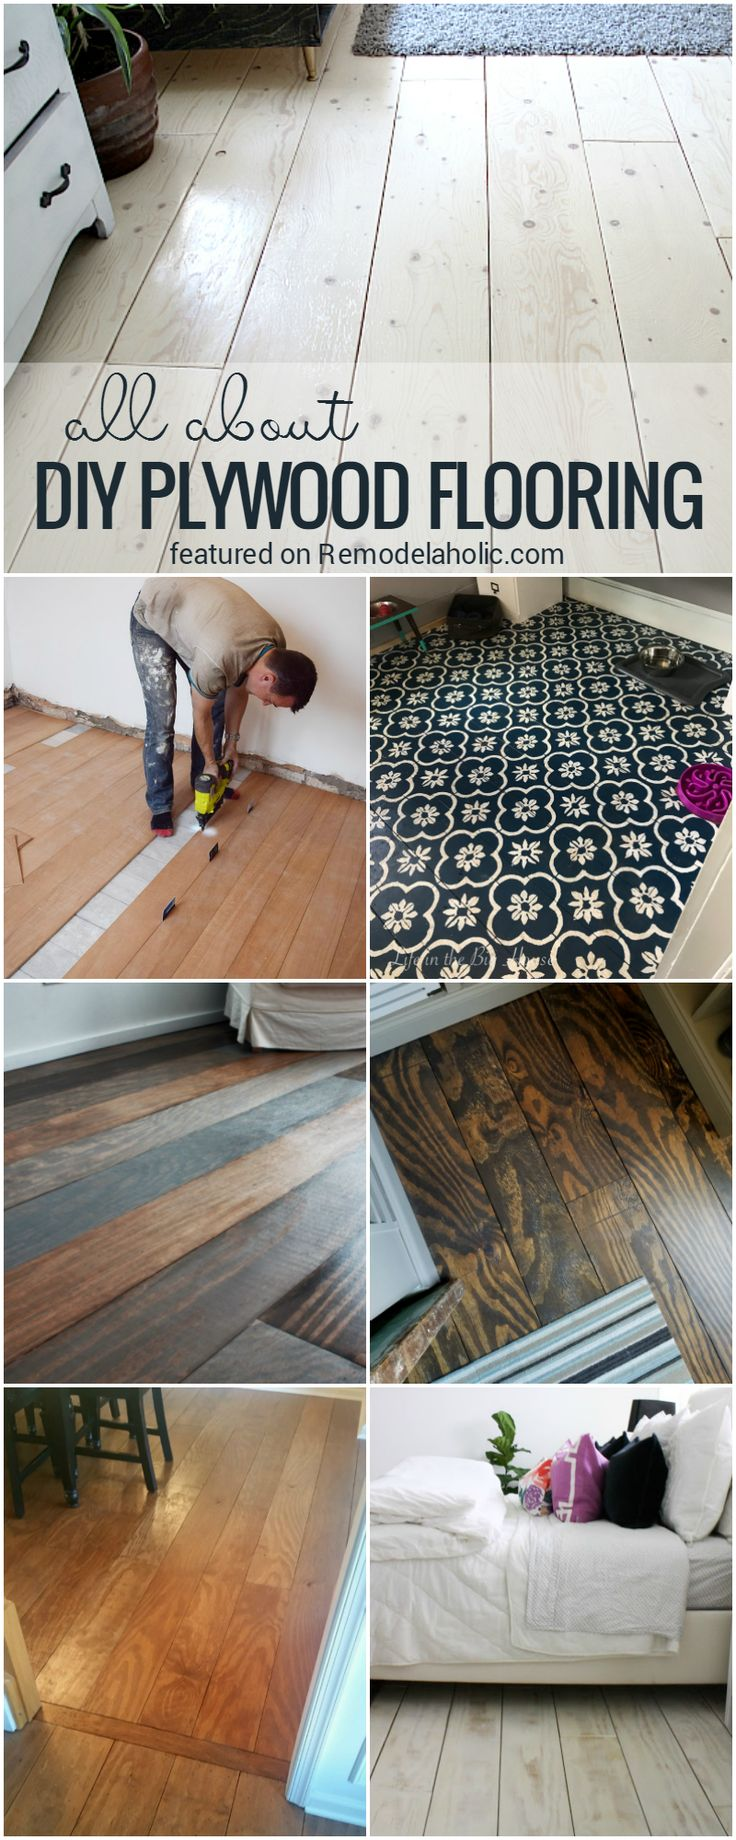 All About DIY Planked Plywood Flooring: tips and FAQs about installation, durability, and cleaning, plus pros and cons about installing DIY plywood plank floors @Remodelaholic